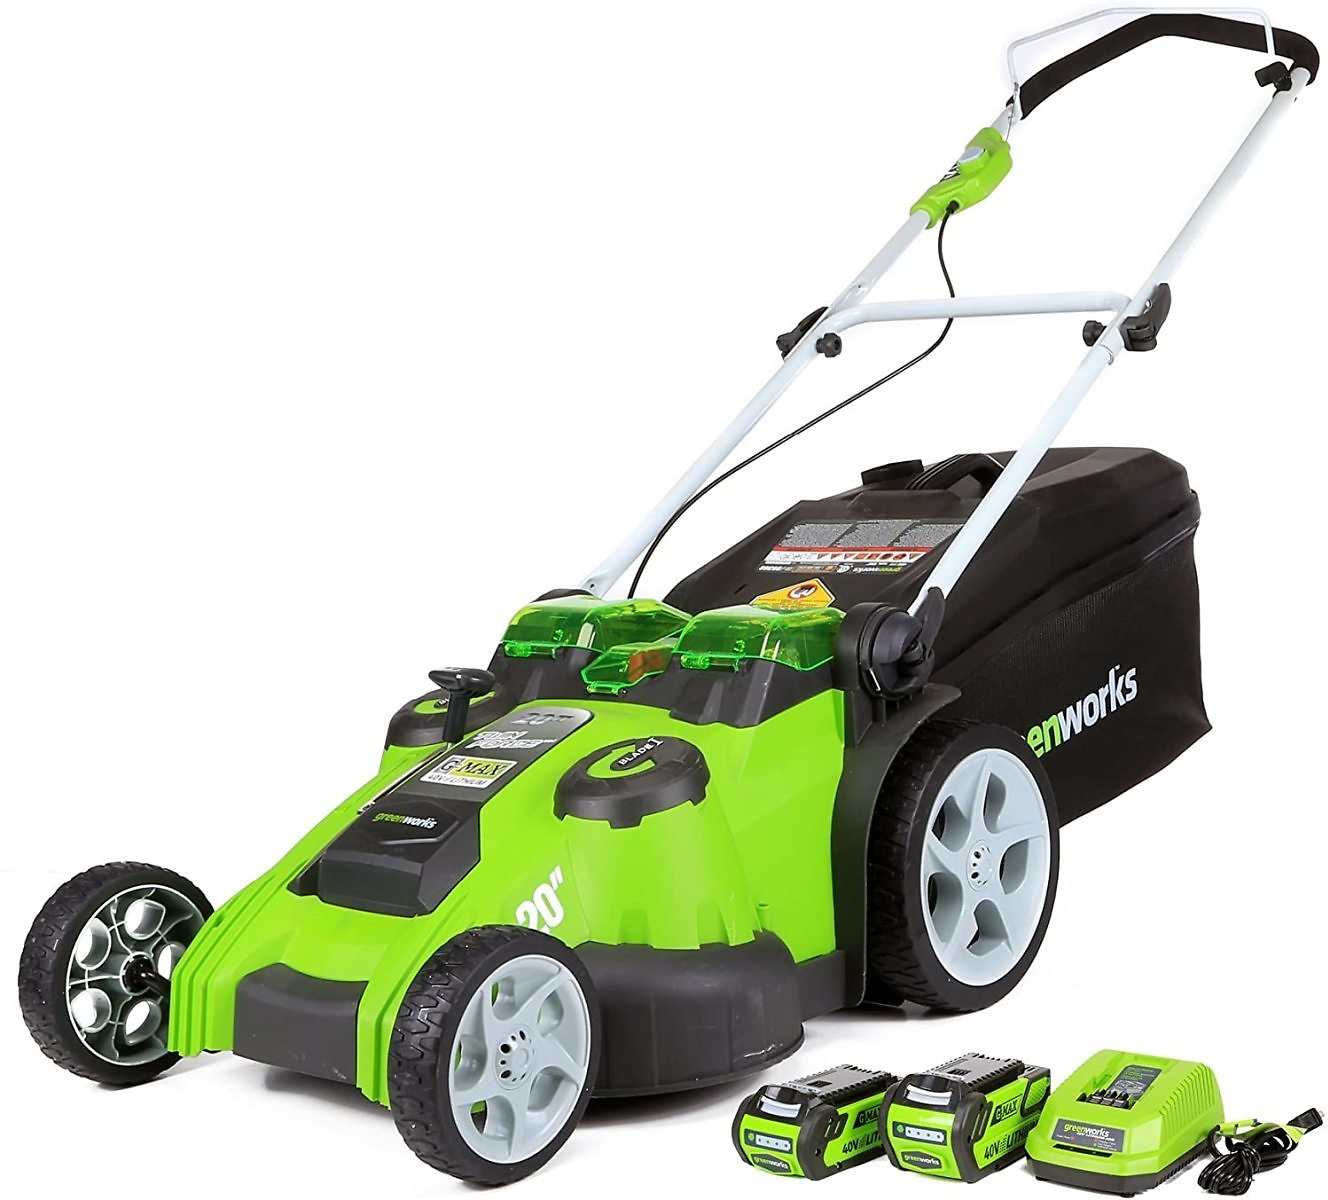 Up to 30% Off Greenworks Outdoor Power Tools   Amazon